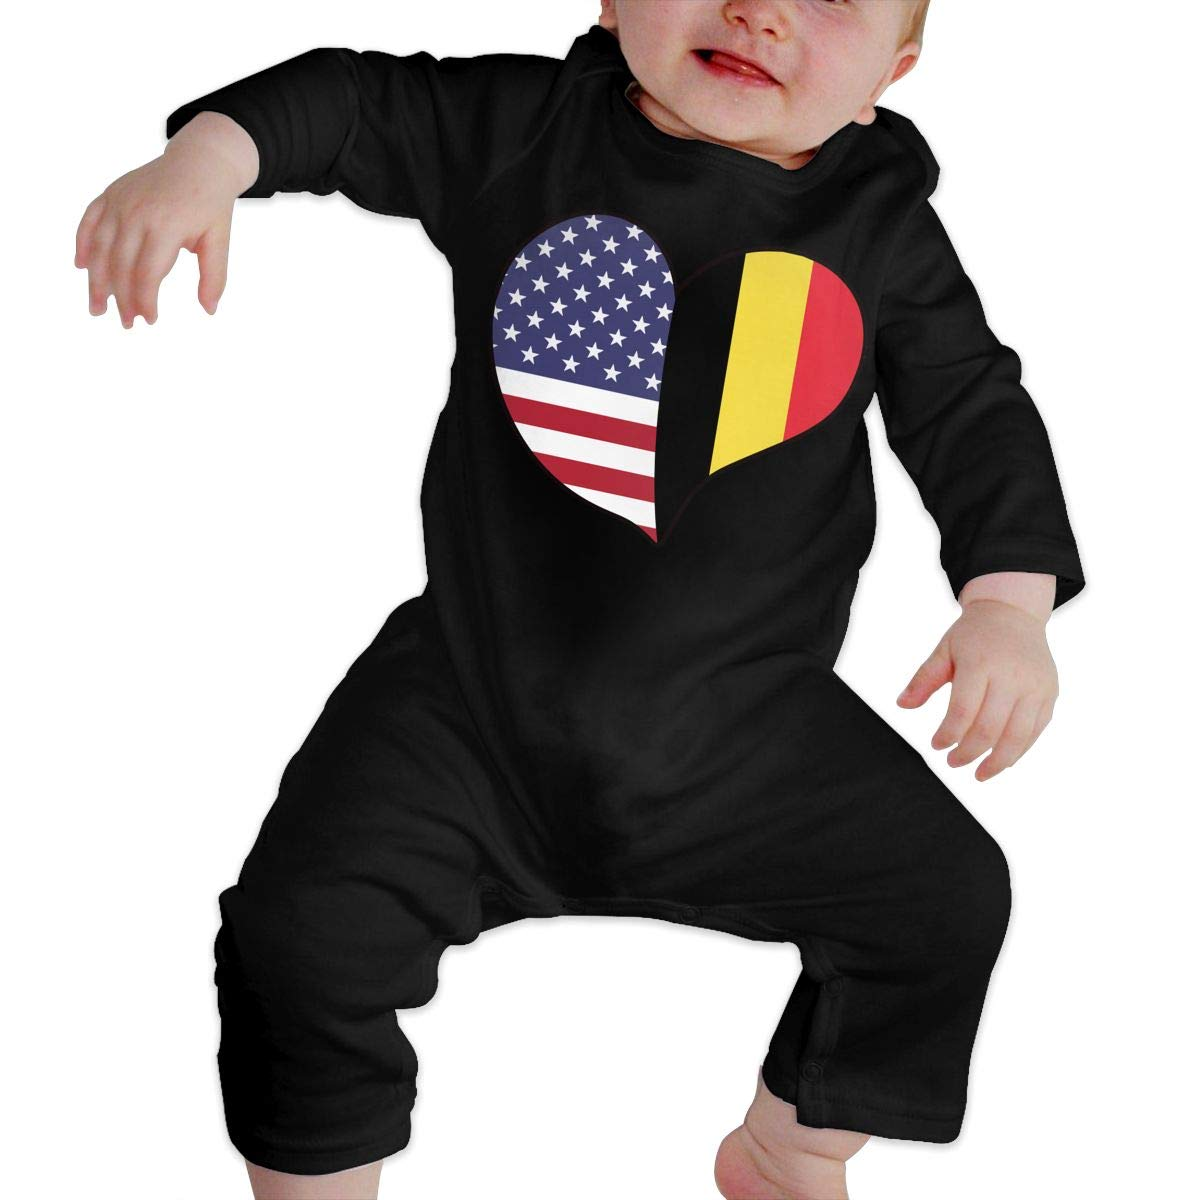 A1BY-5US Infant Baby Boys Girls Cotton Long Sleeve USA Belgium Flag Heart Baby Clothes Funny Printed Romper Clothes